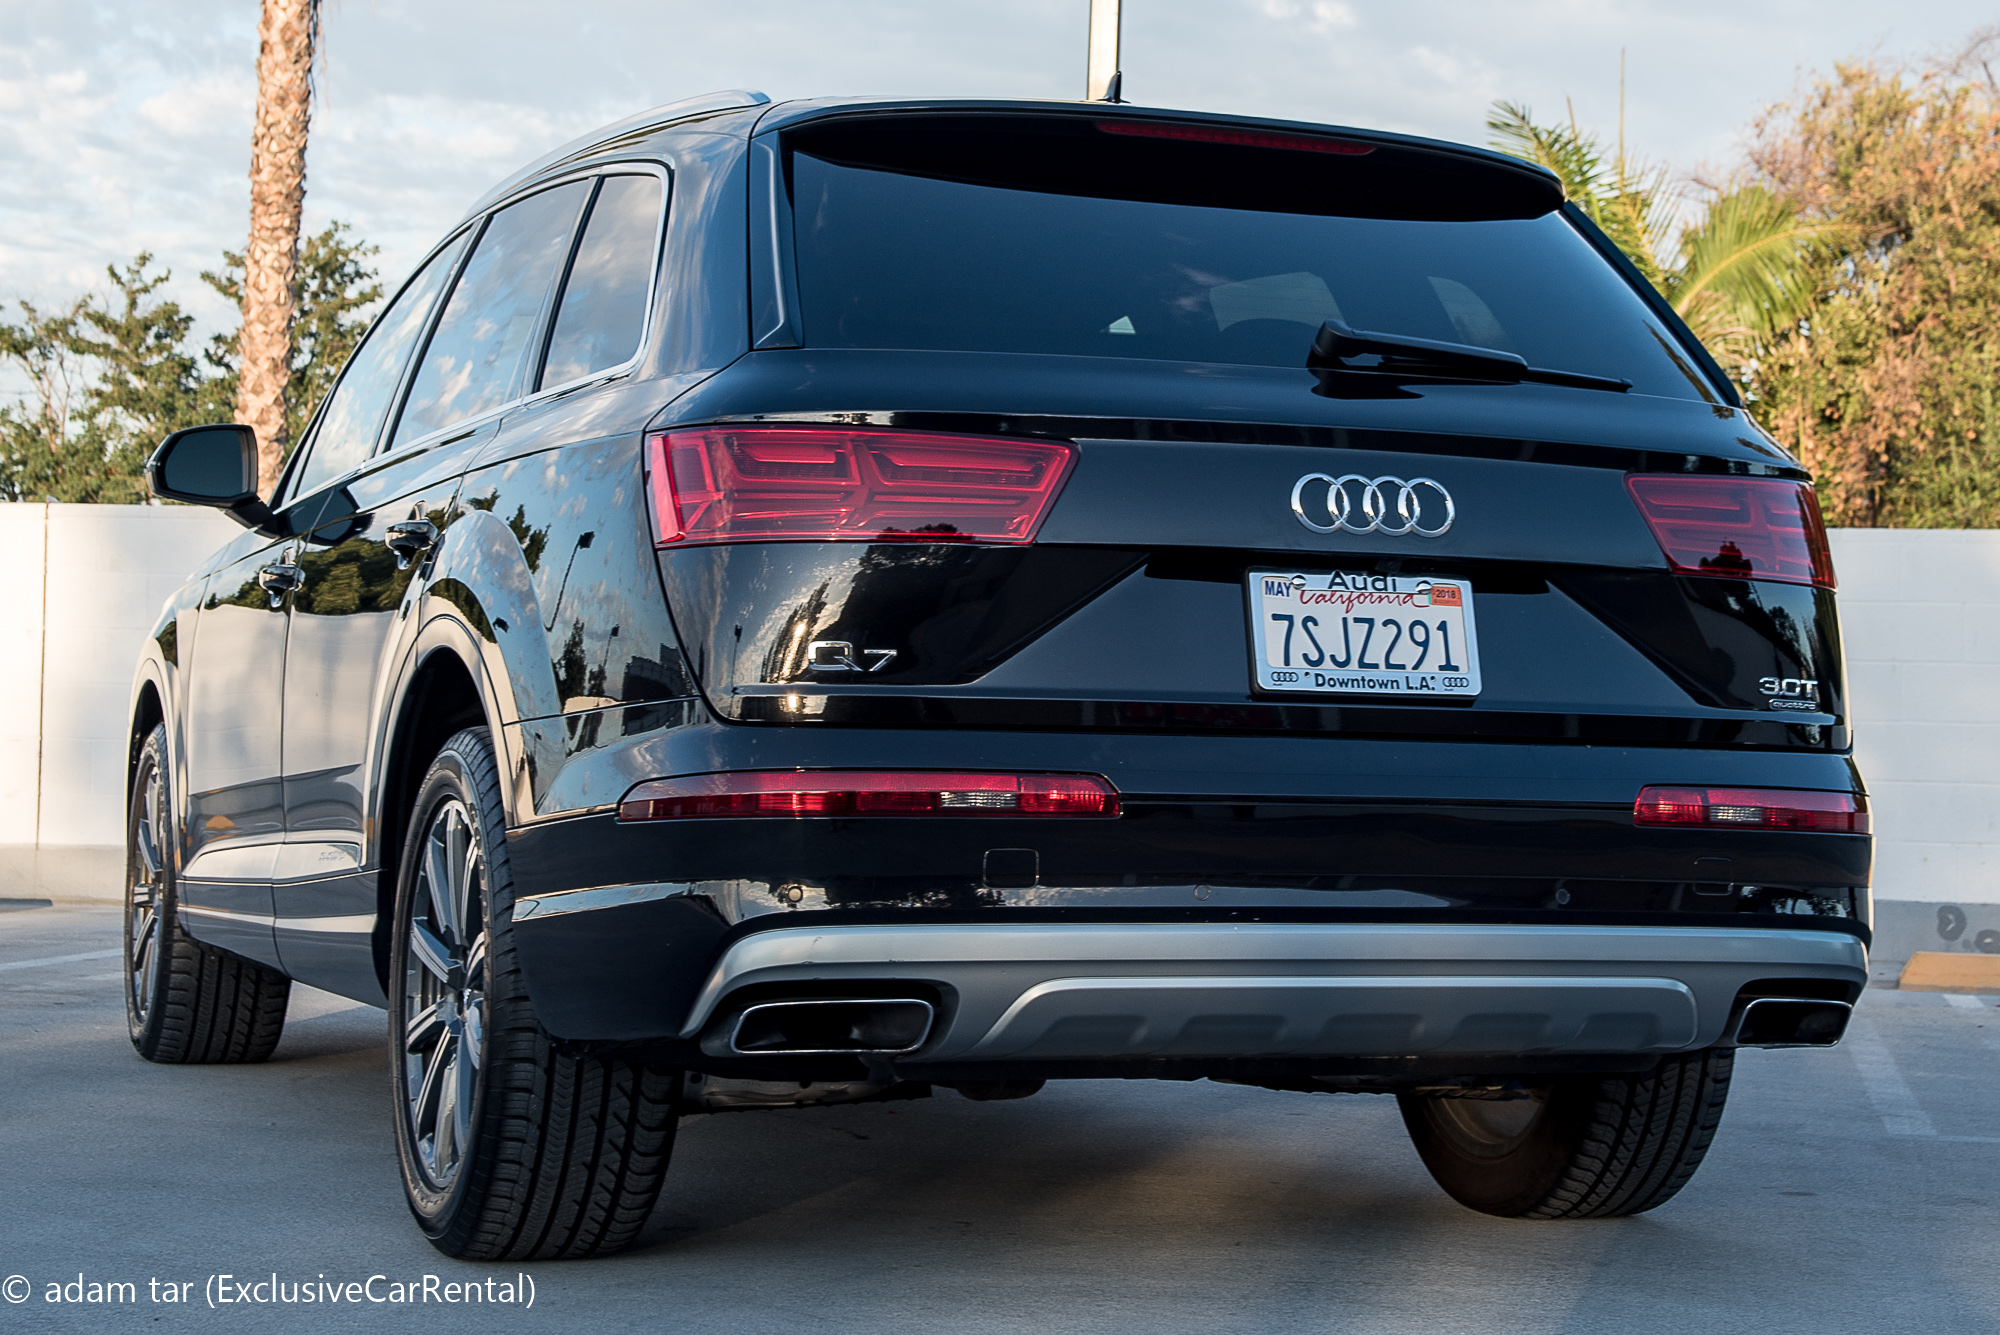 Audi Q Luxury SUV Rental In Los Angeles And Surrounding Cities - Audi downtown la